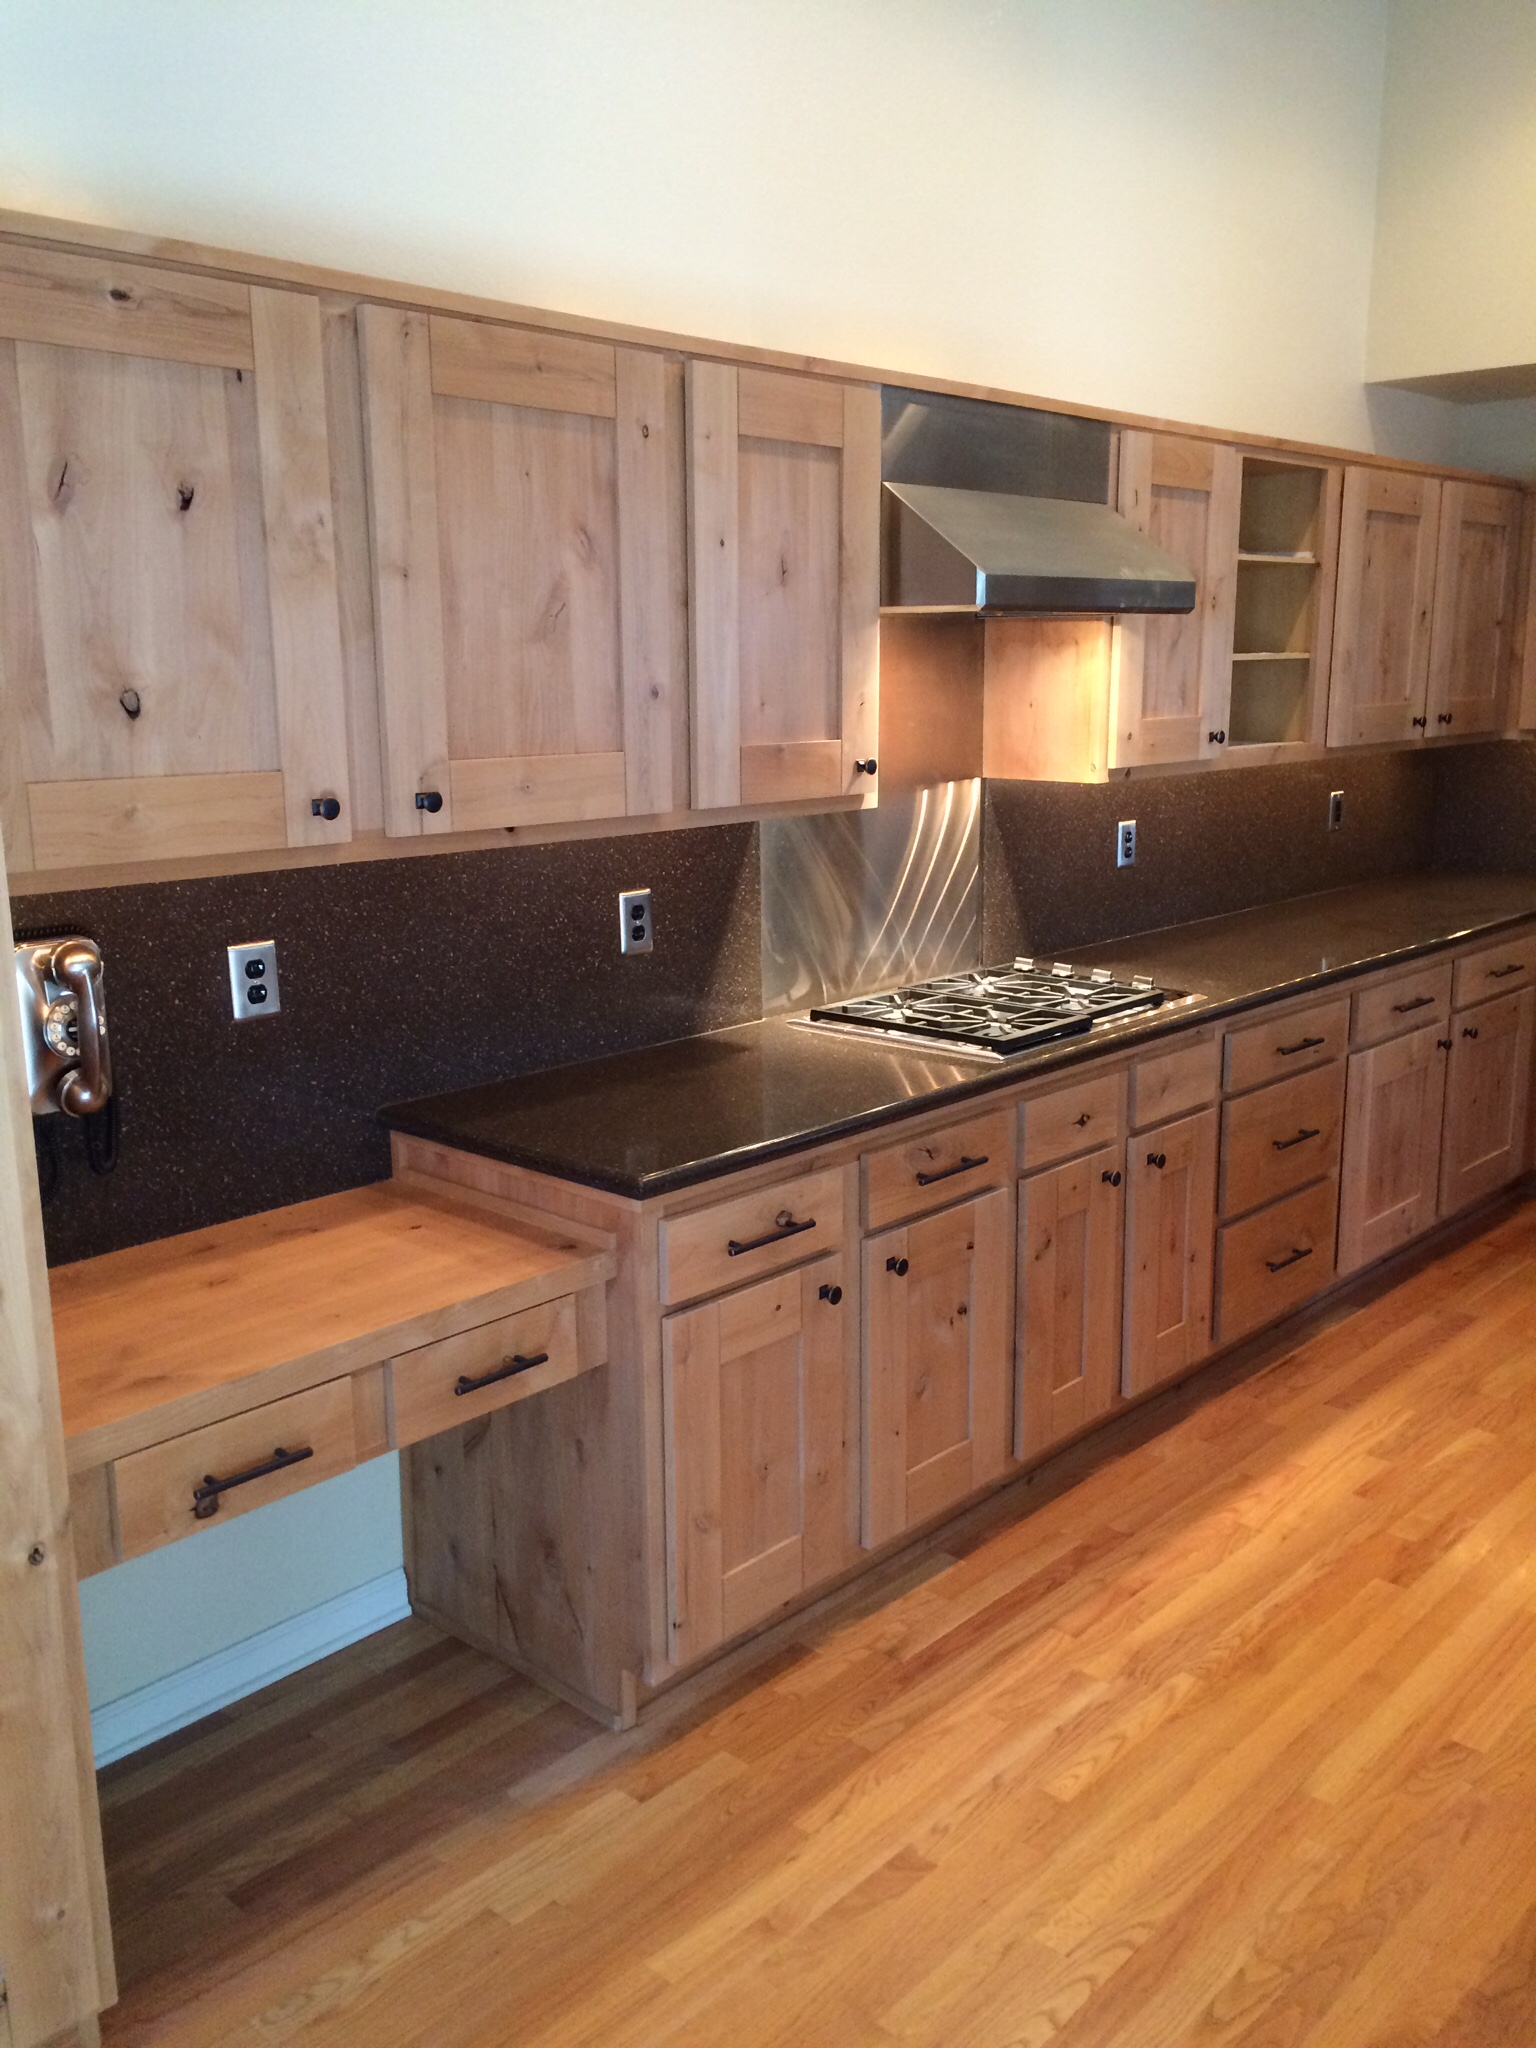 Reface kitchen cabinets reface kitchen cabinets reno for Kitchen cabinets reno